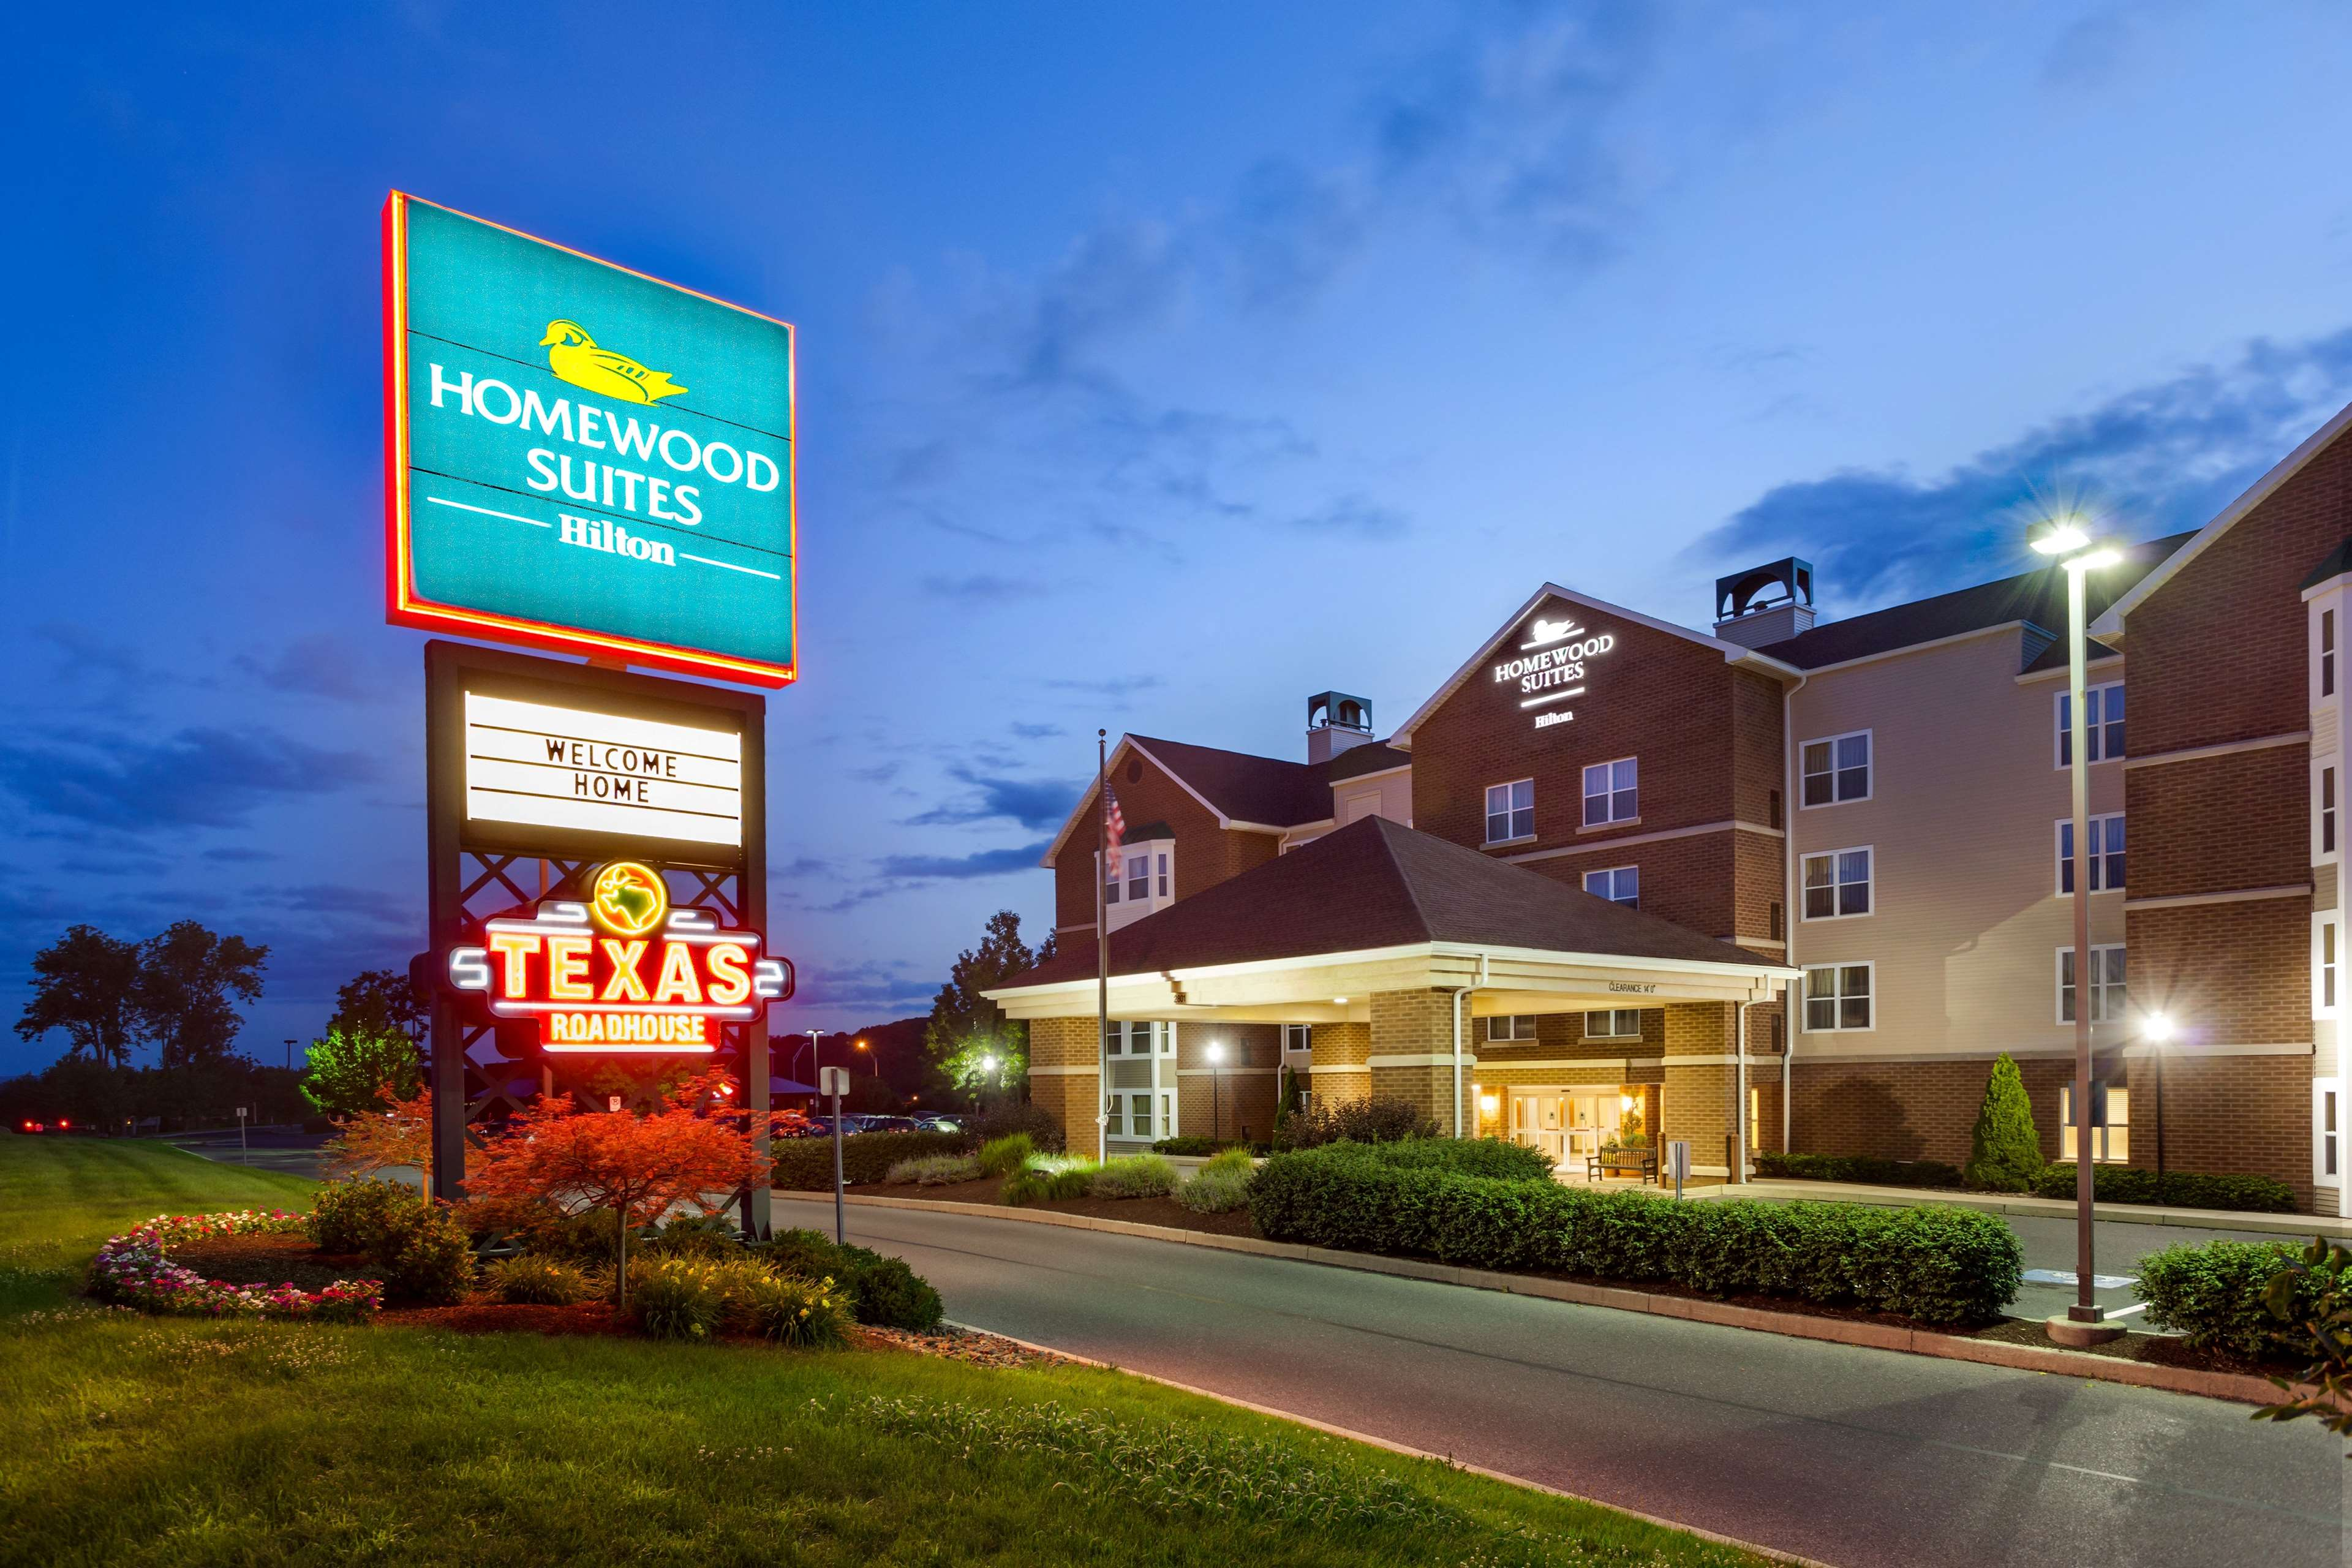 Homewood Suites by Hilton Reading image 1